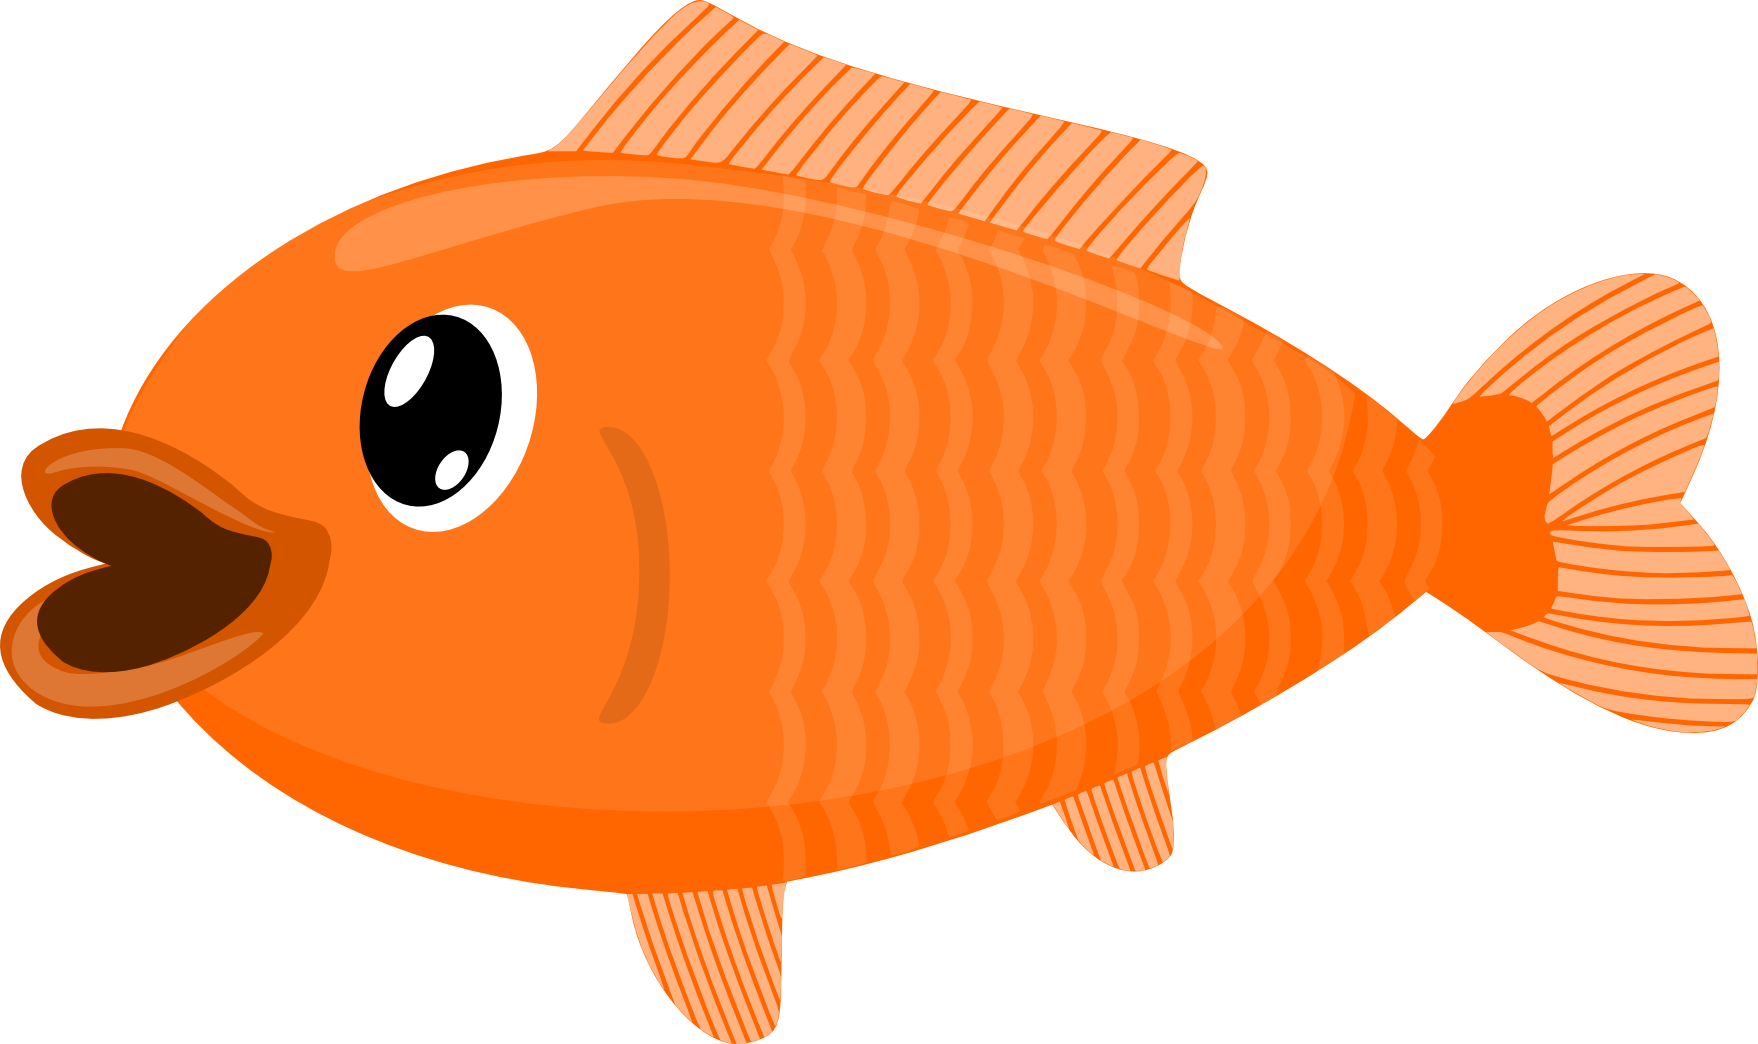 Koi fish at getdrawings. Trout clipart carp